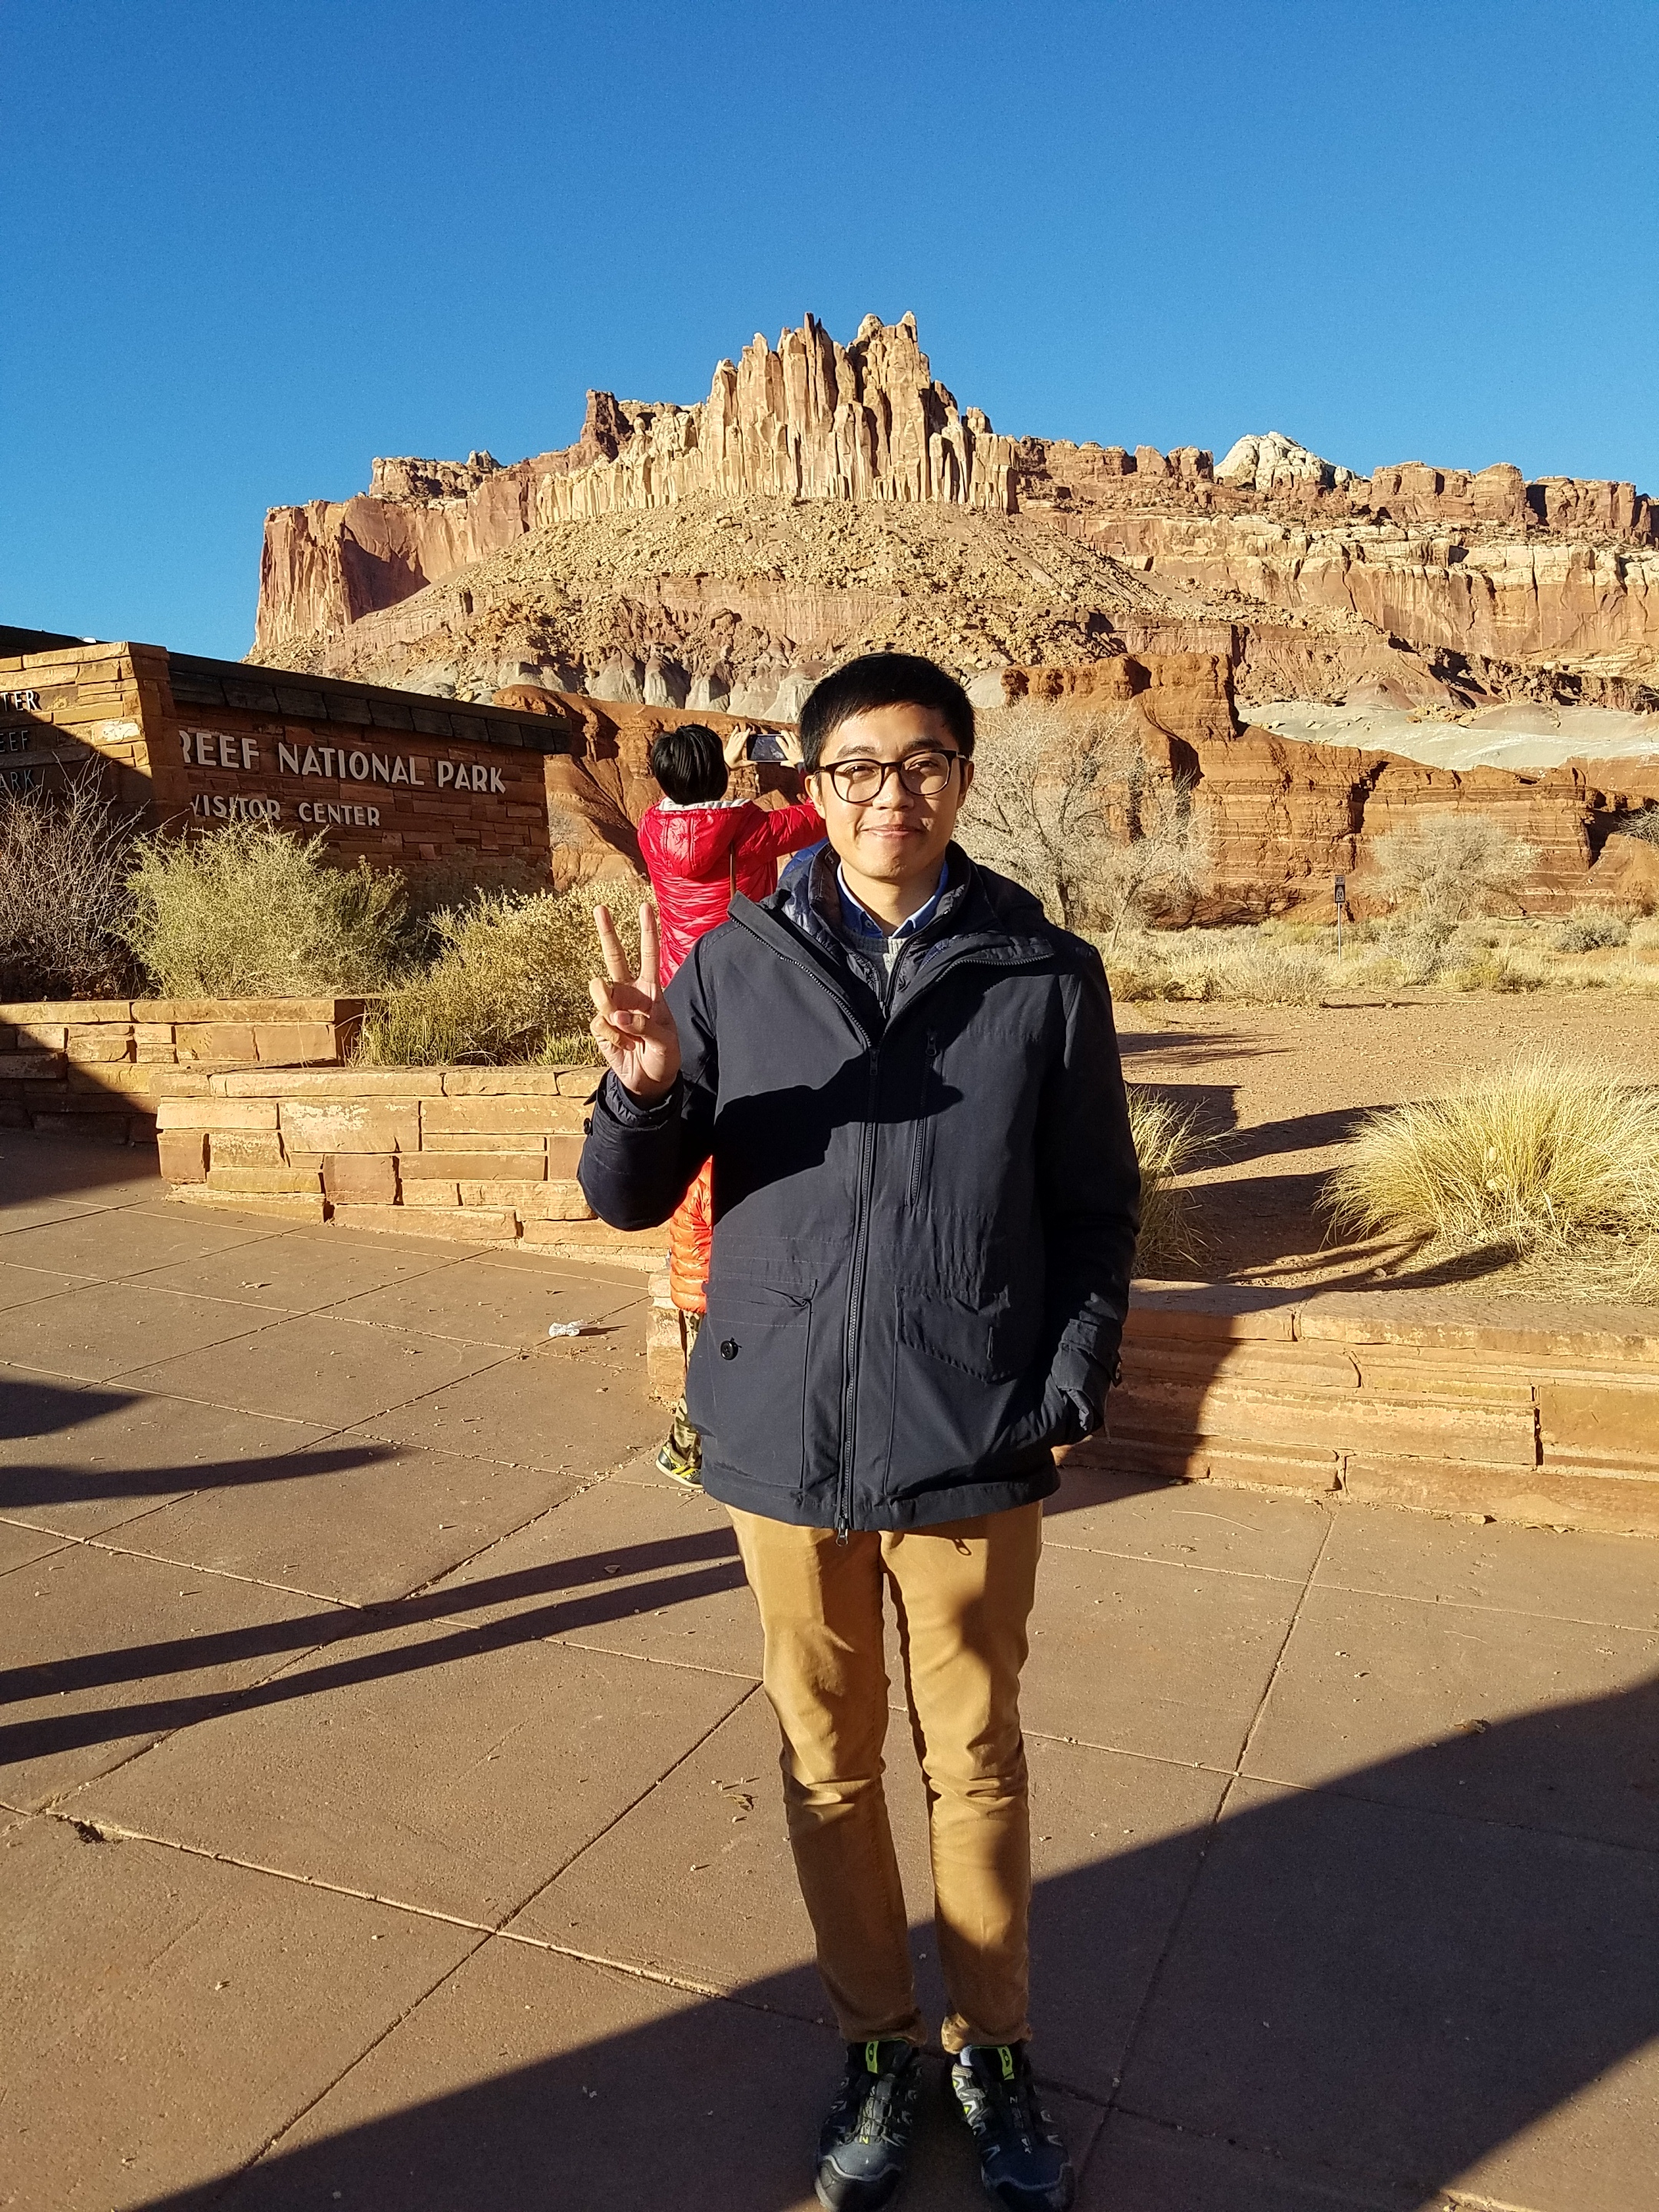 The only photo I could find showing that we visited  Capital Reef ...